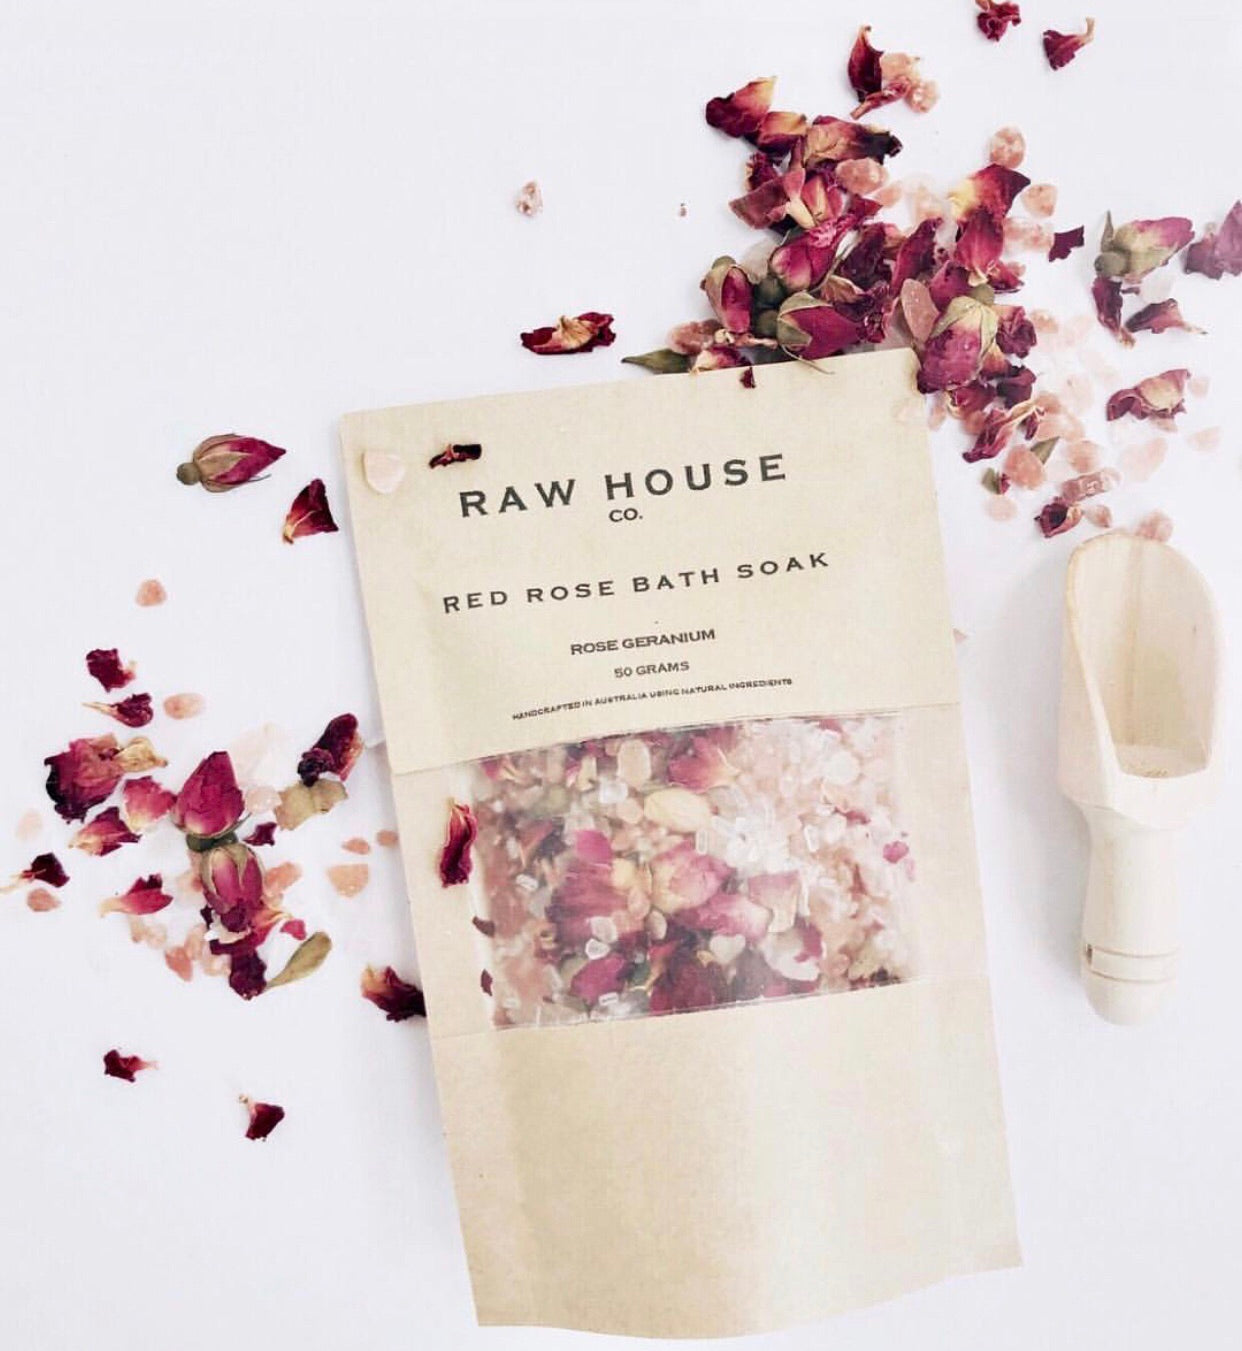 RED ROSE BATH SOAK